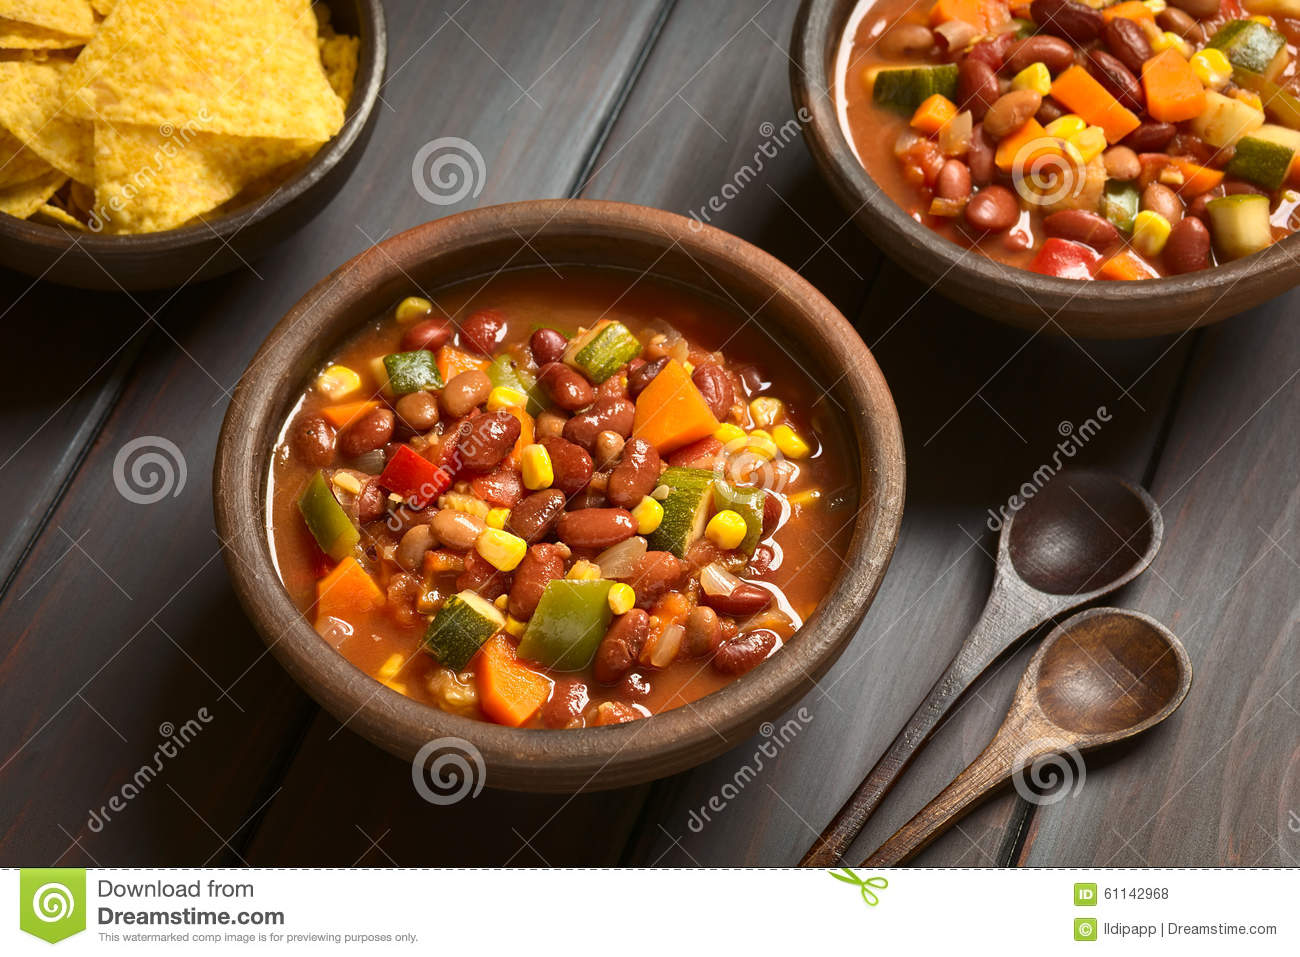 Download Vegetarian Chili Dish stock photo. Image of carne, chip - 61142968